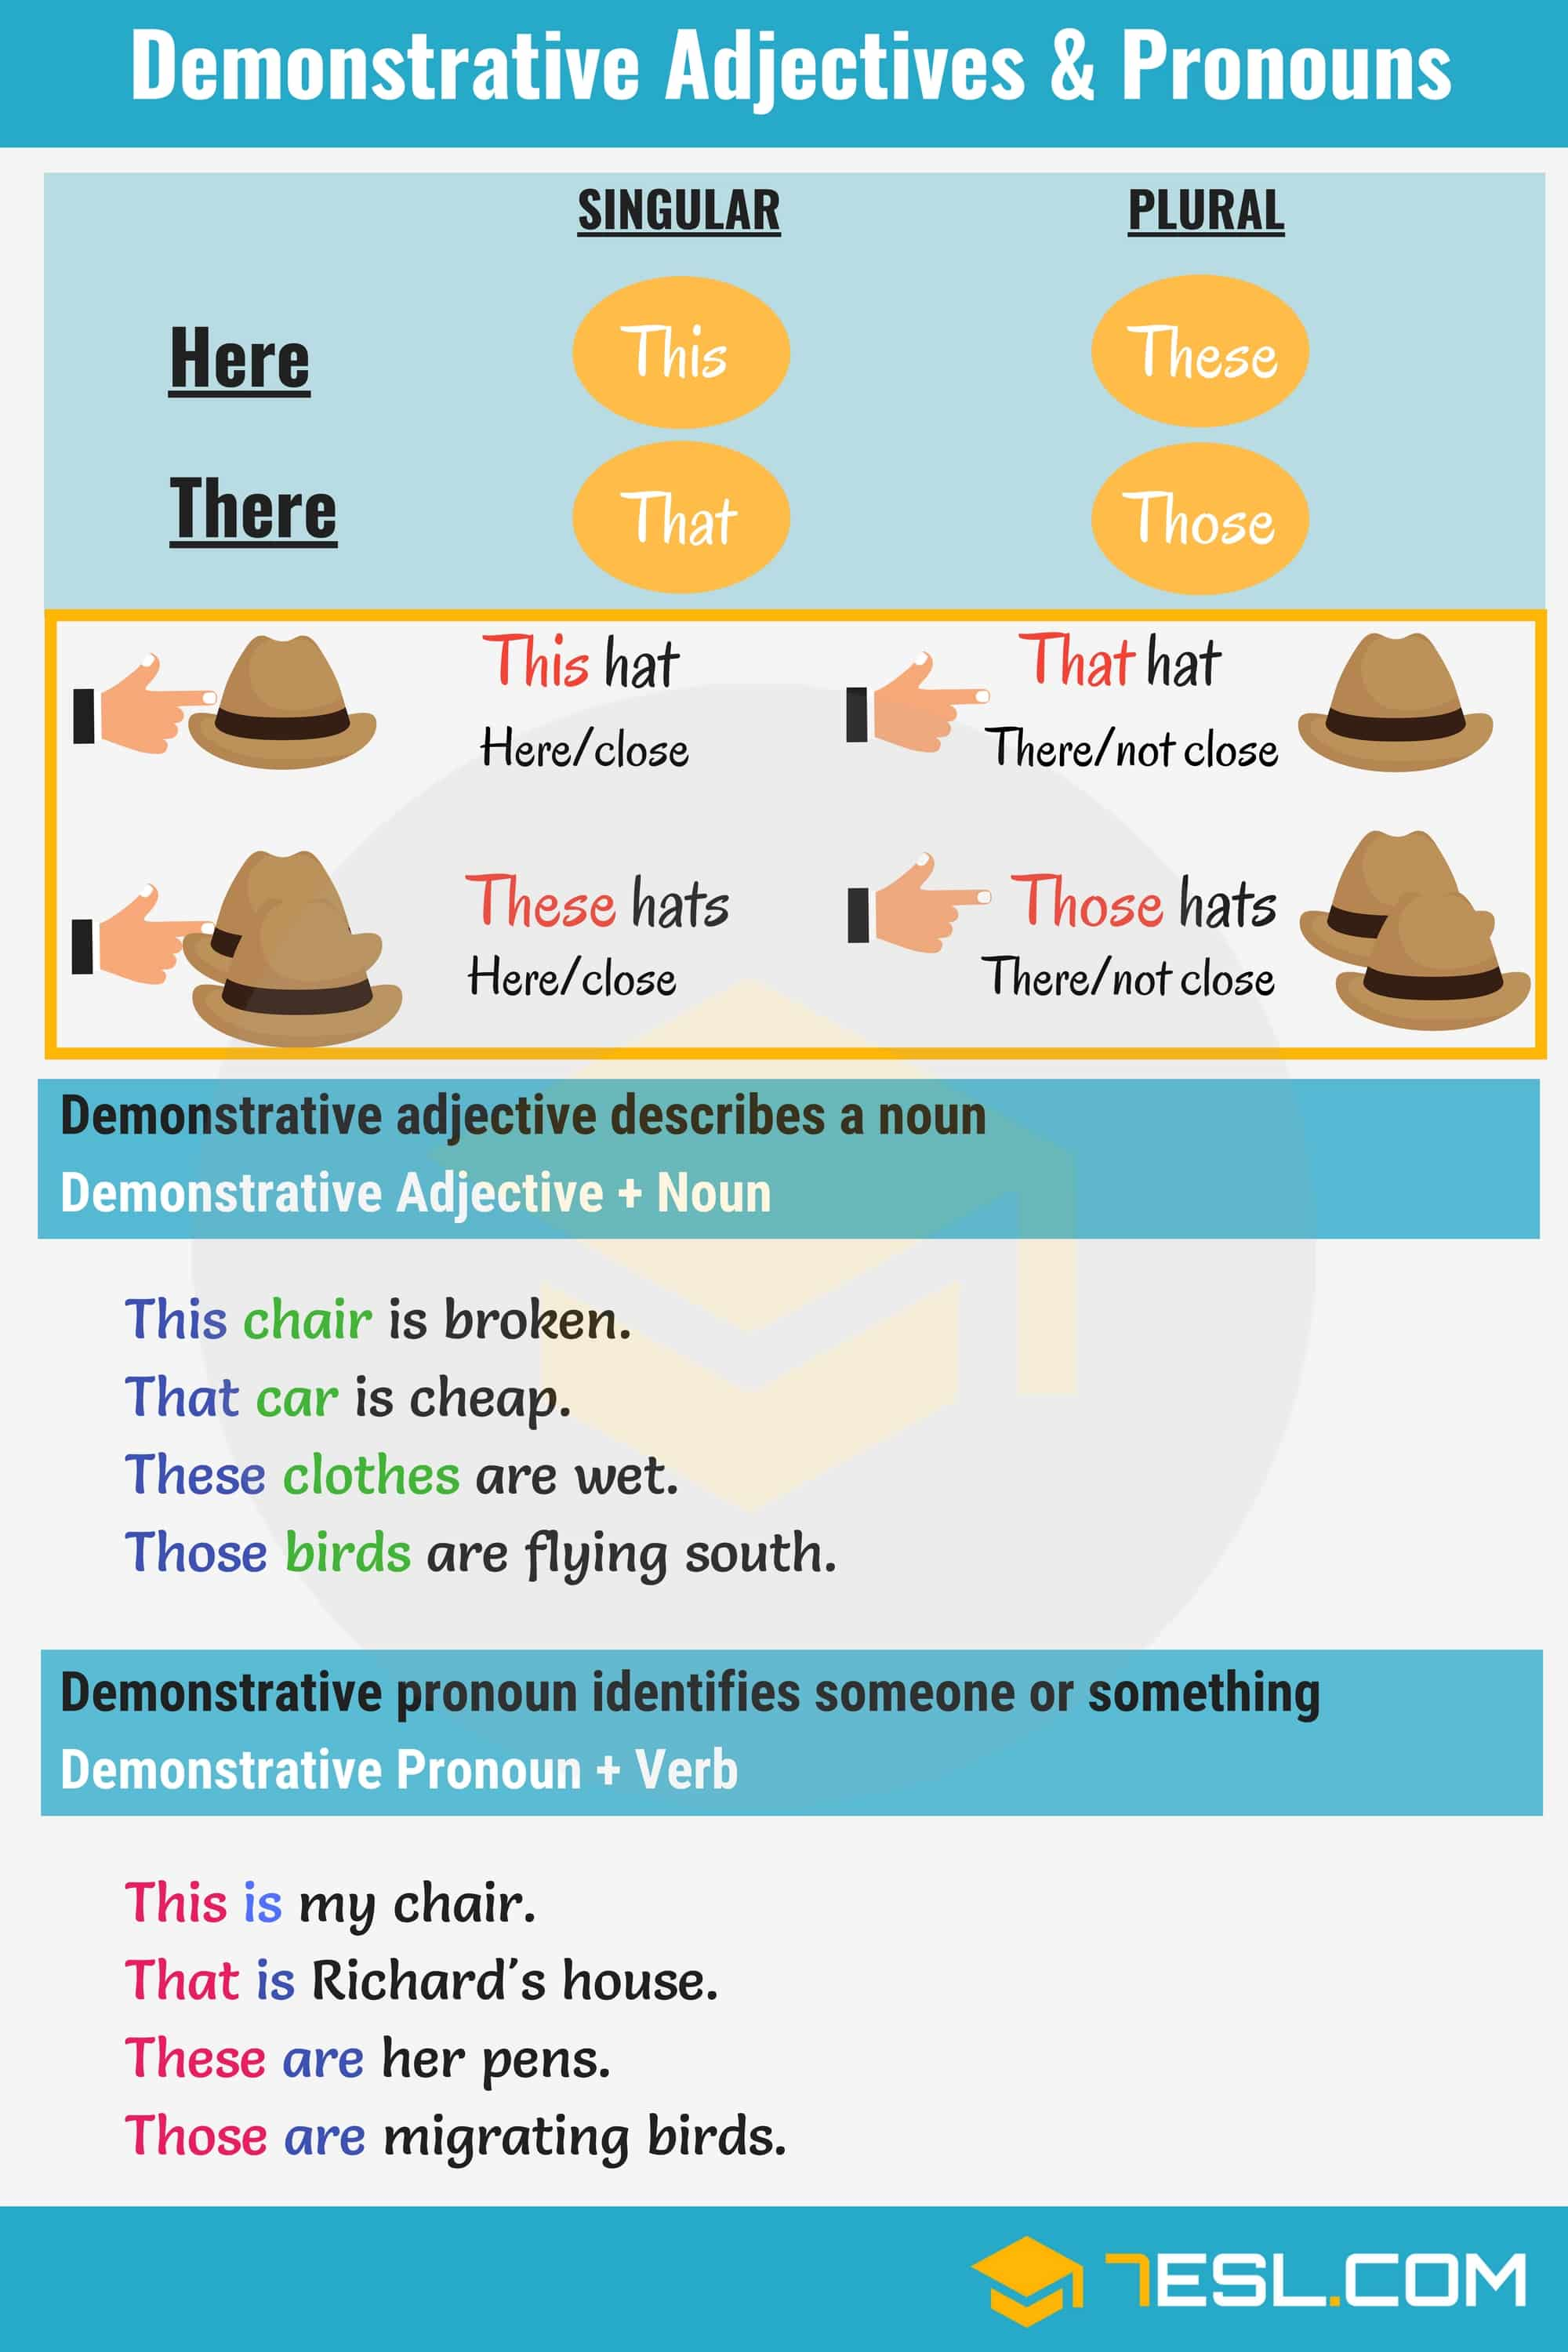 Demonstrative Adjectives!!! Learn how to use demonstrative adjectives and pronouns in English. When a noun or nouns need to be identified, especially in a spatial or positional context, a demonstrative adjective is used.